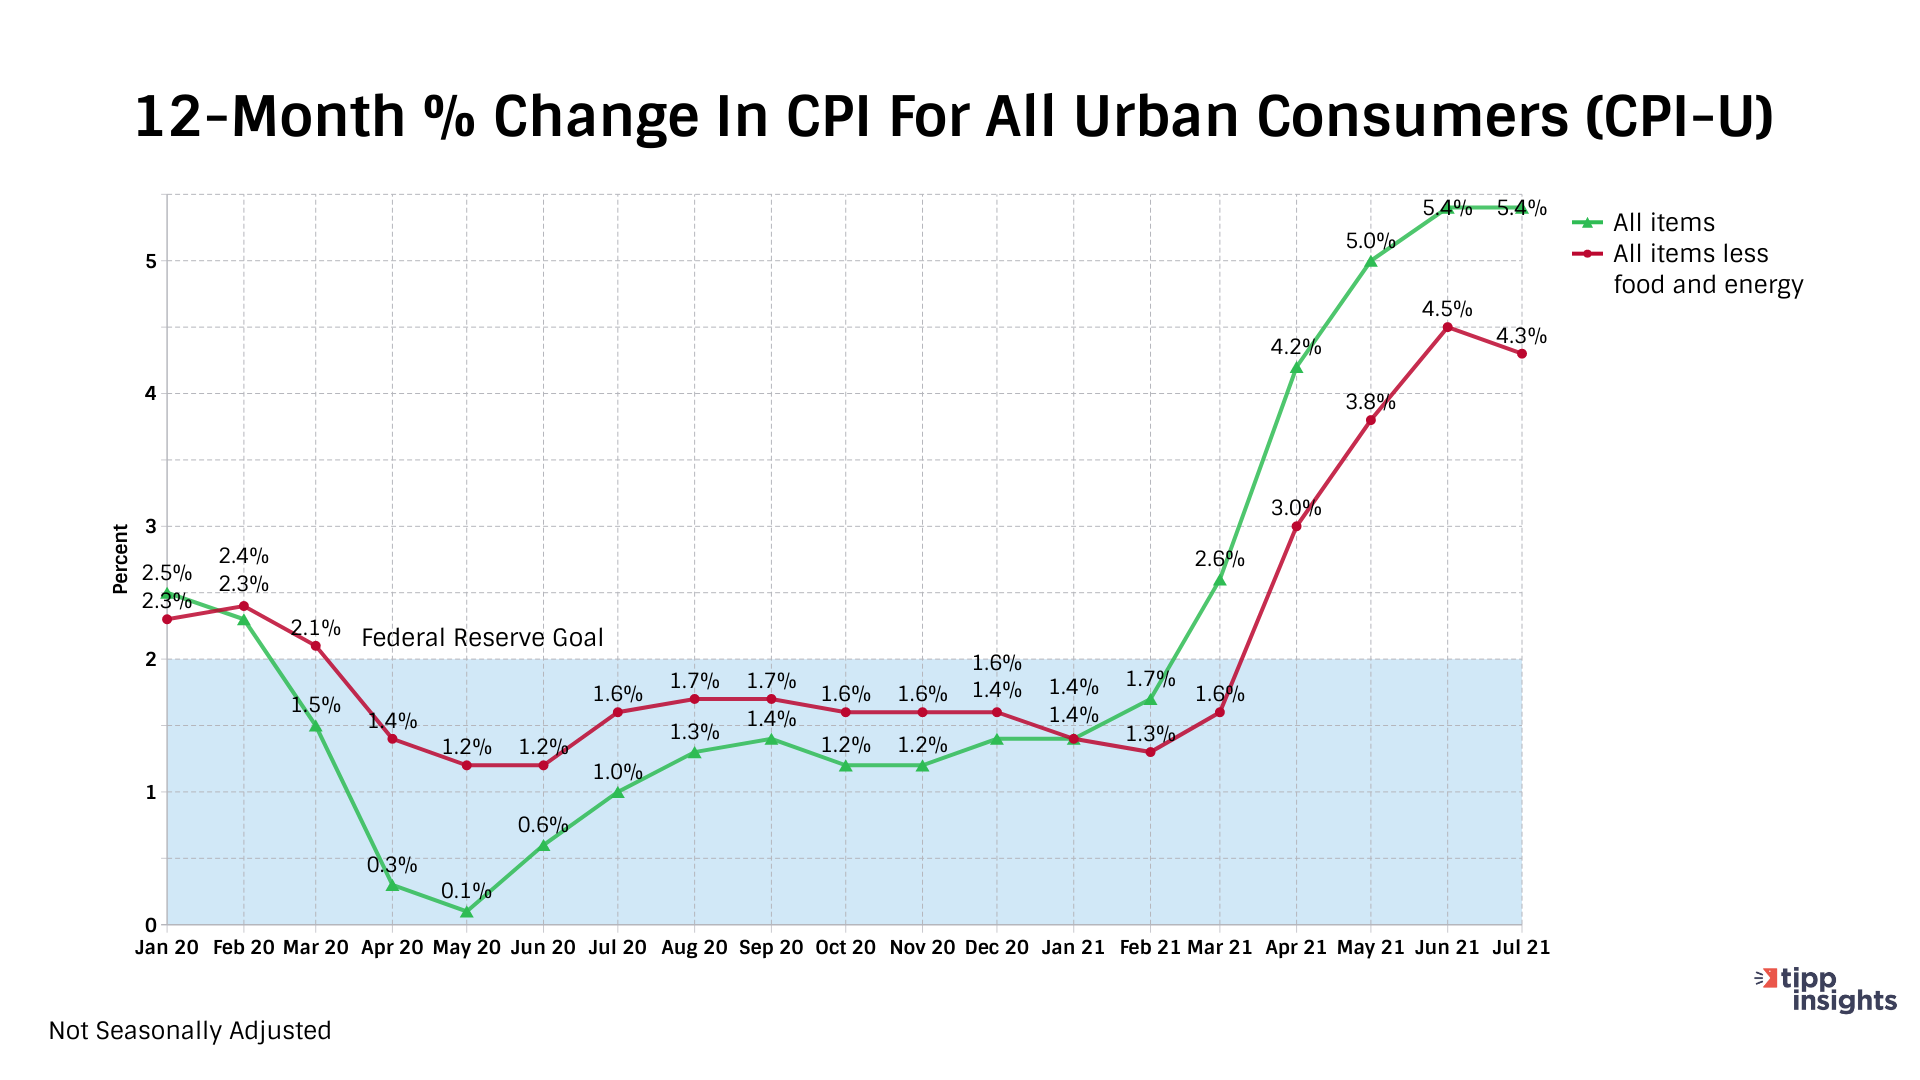 12-month% Change in CPI for Urban Consumers - Inflation